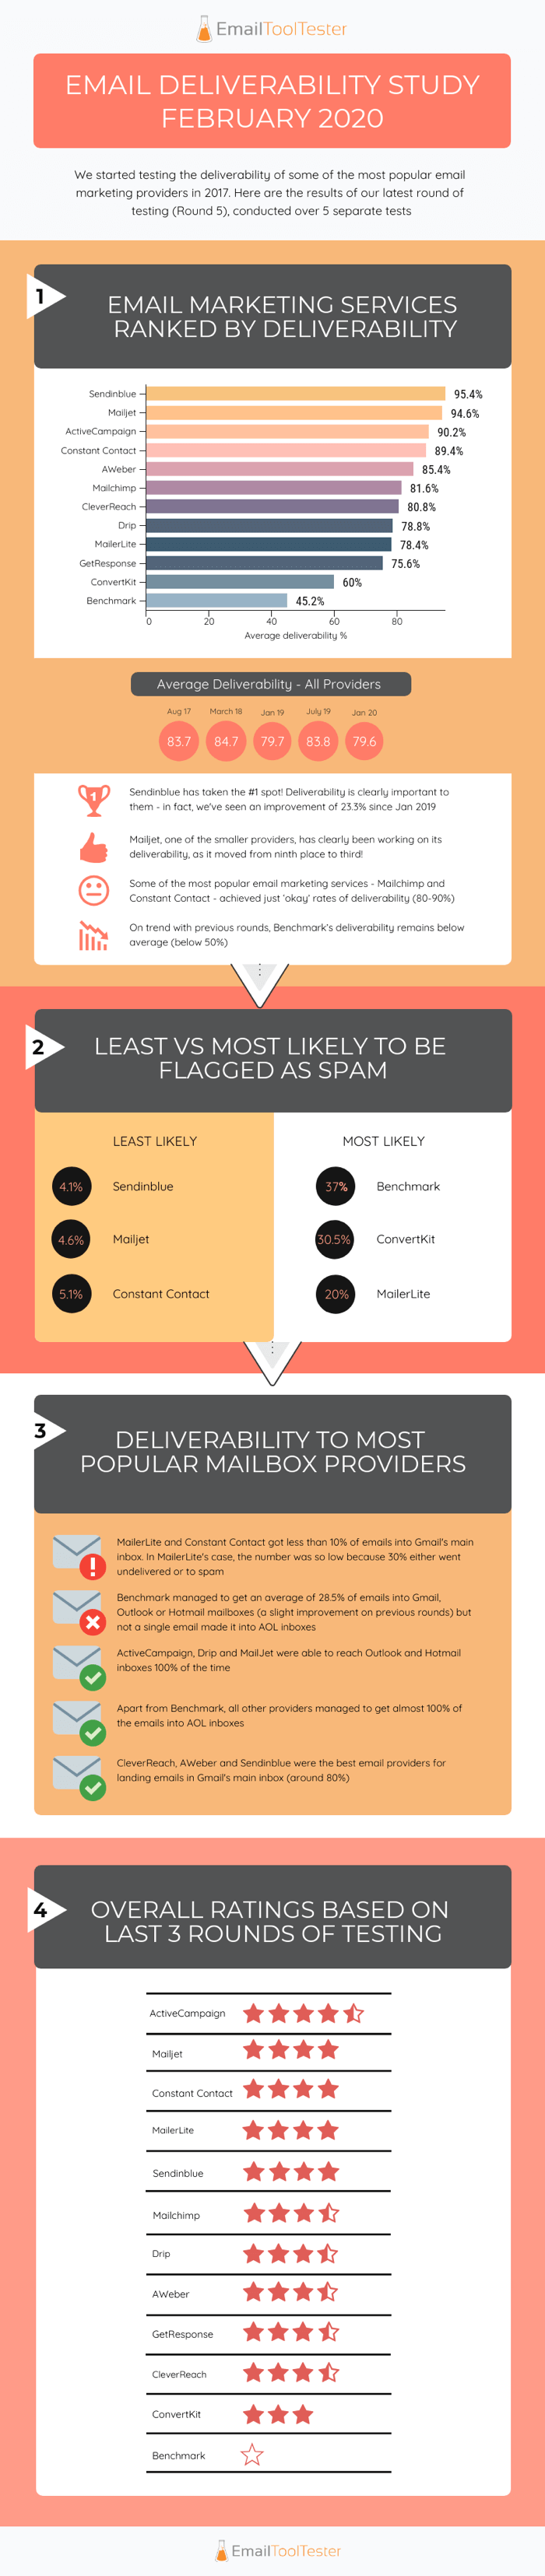 email-deliverability-test-2020-sm